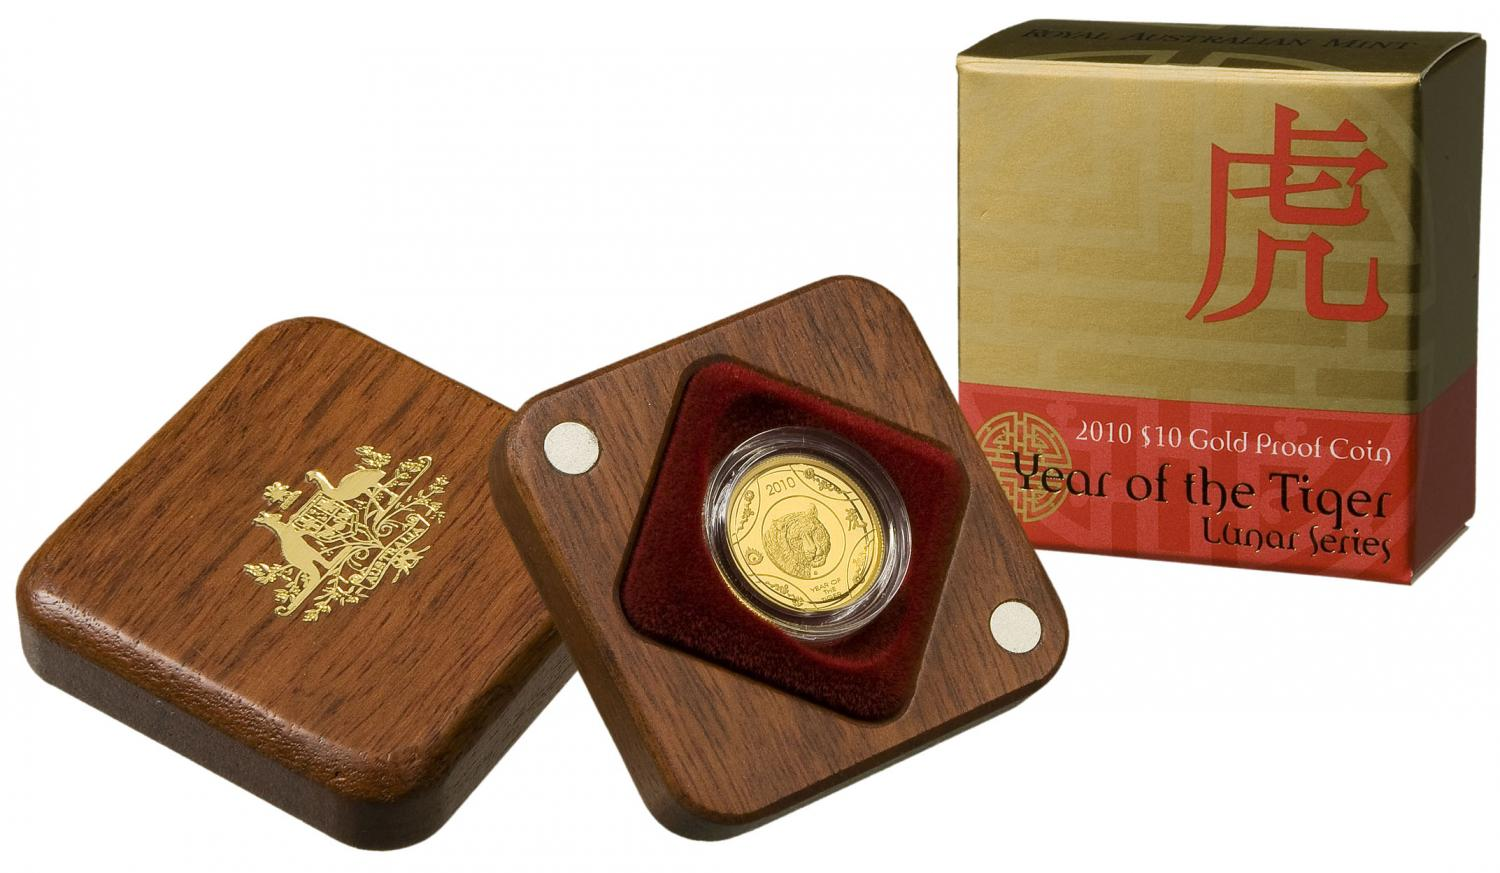 Thumbnail for 2010 Lunar Year of the Tiger $10.00 Gold Proof